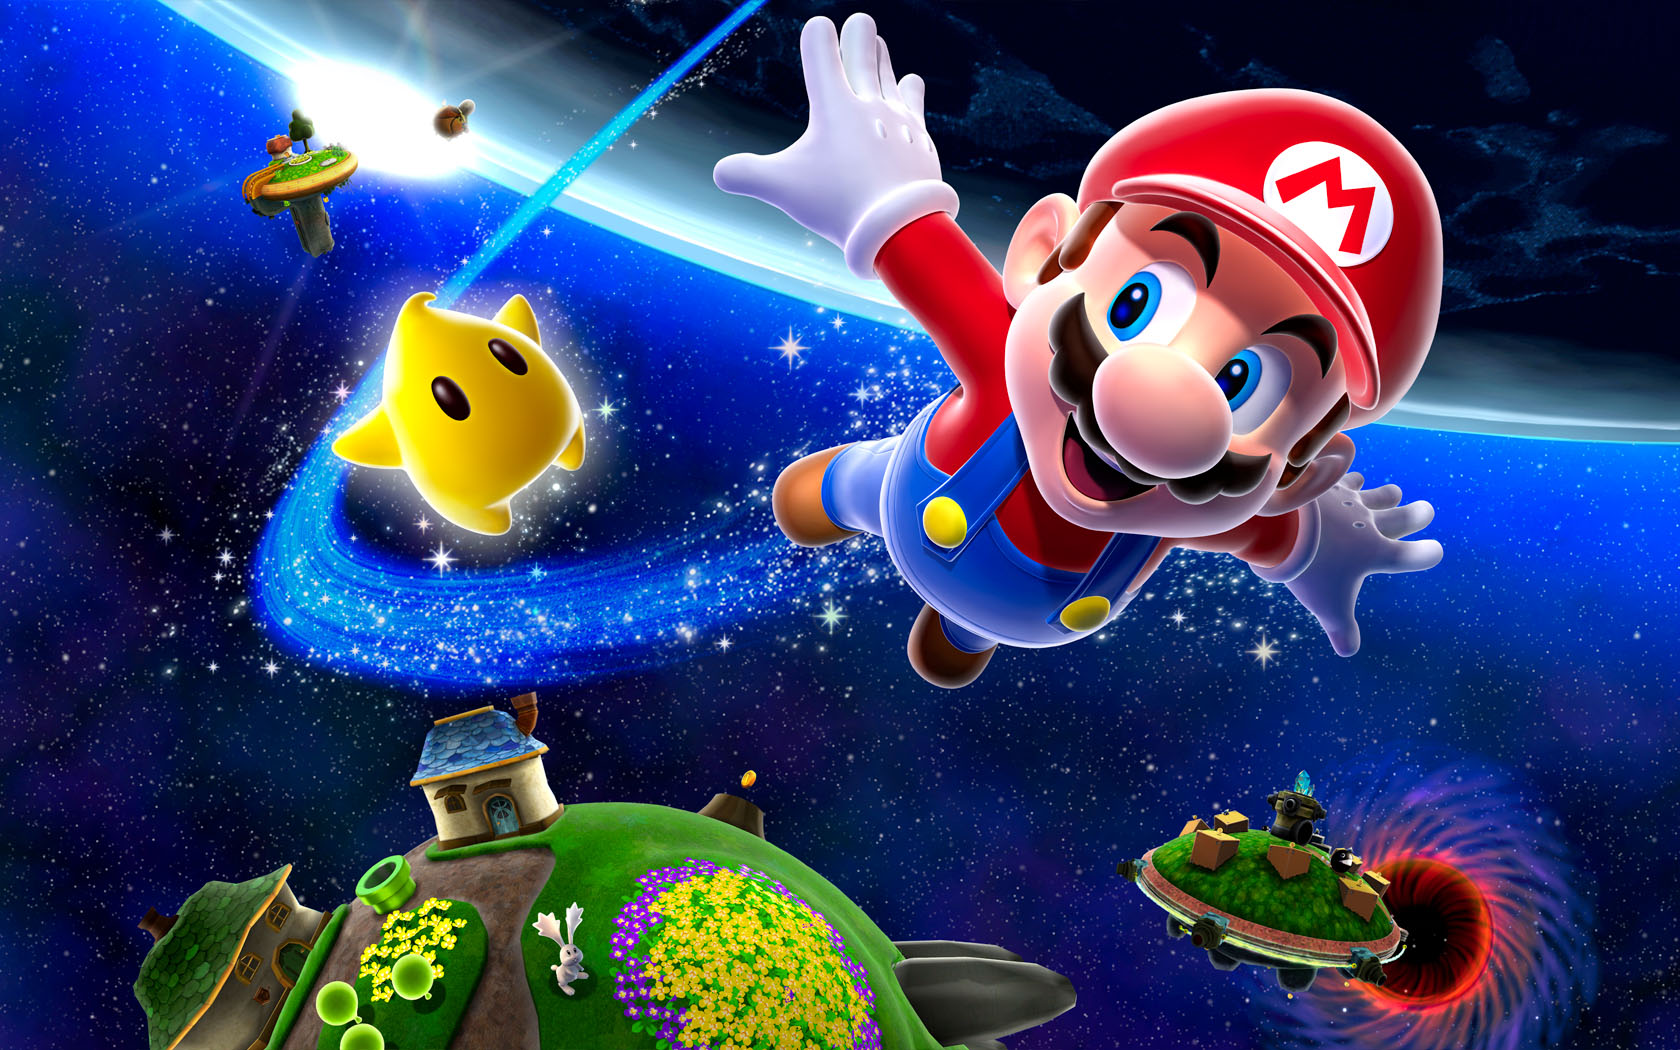 Rumor: 3D Mario Wii U Title Could Be Released Before October